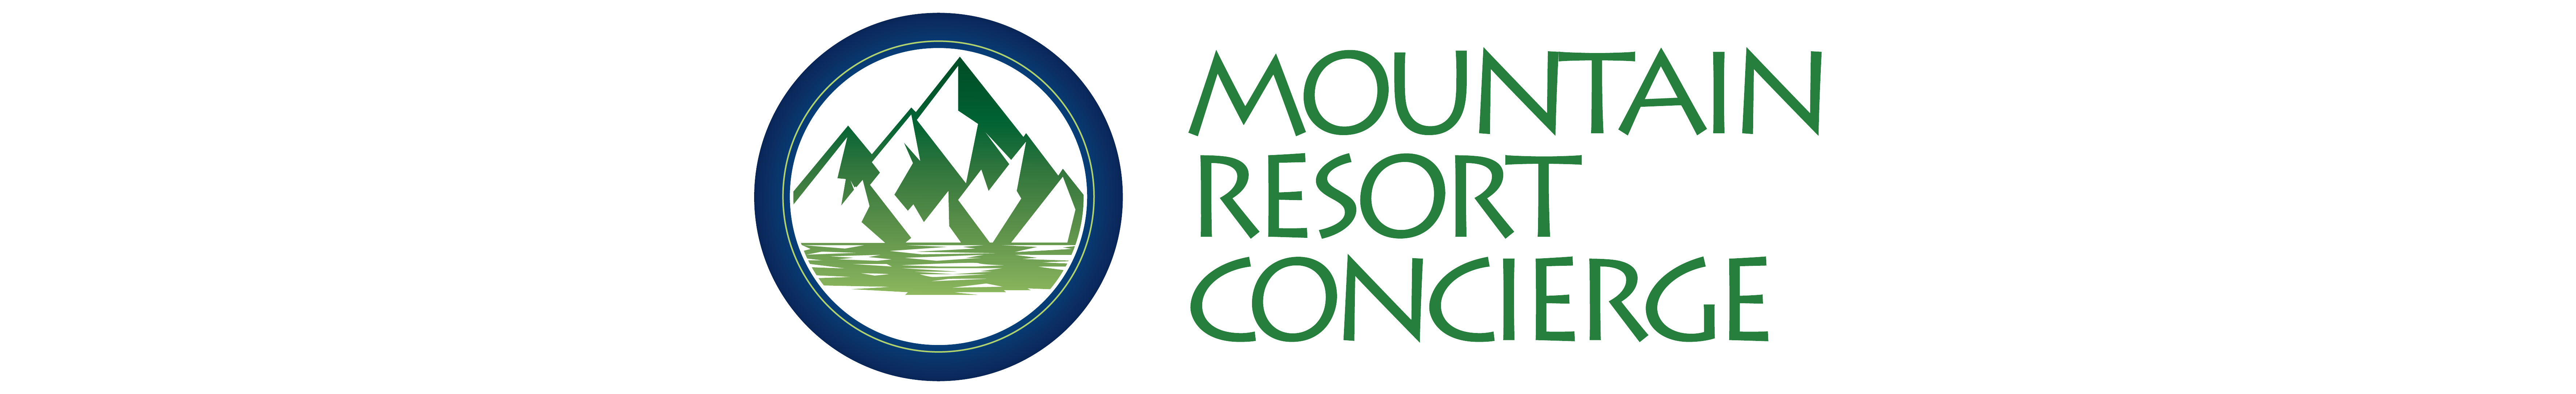 mountain resort concierge